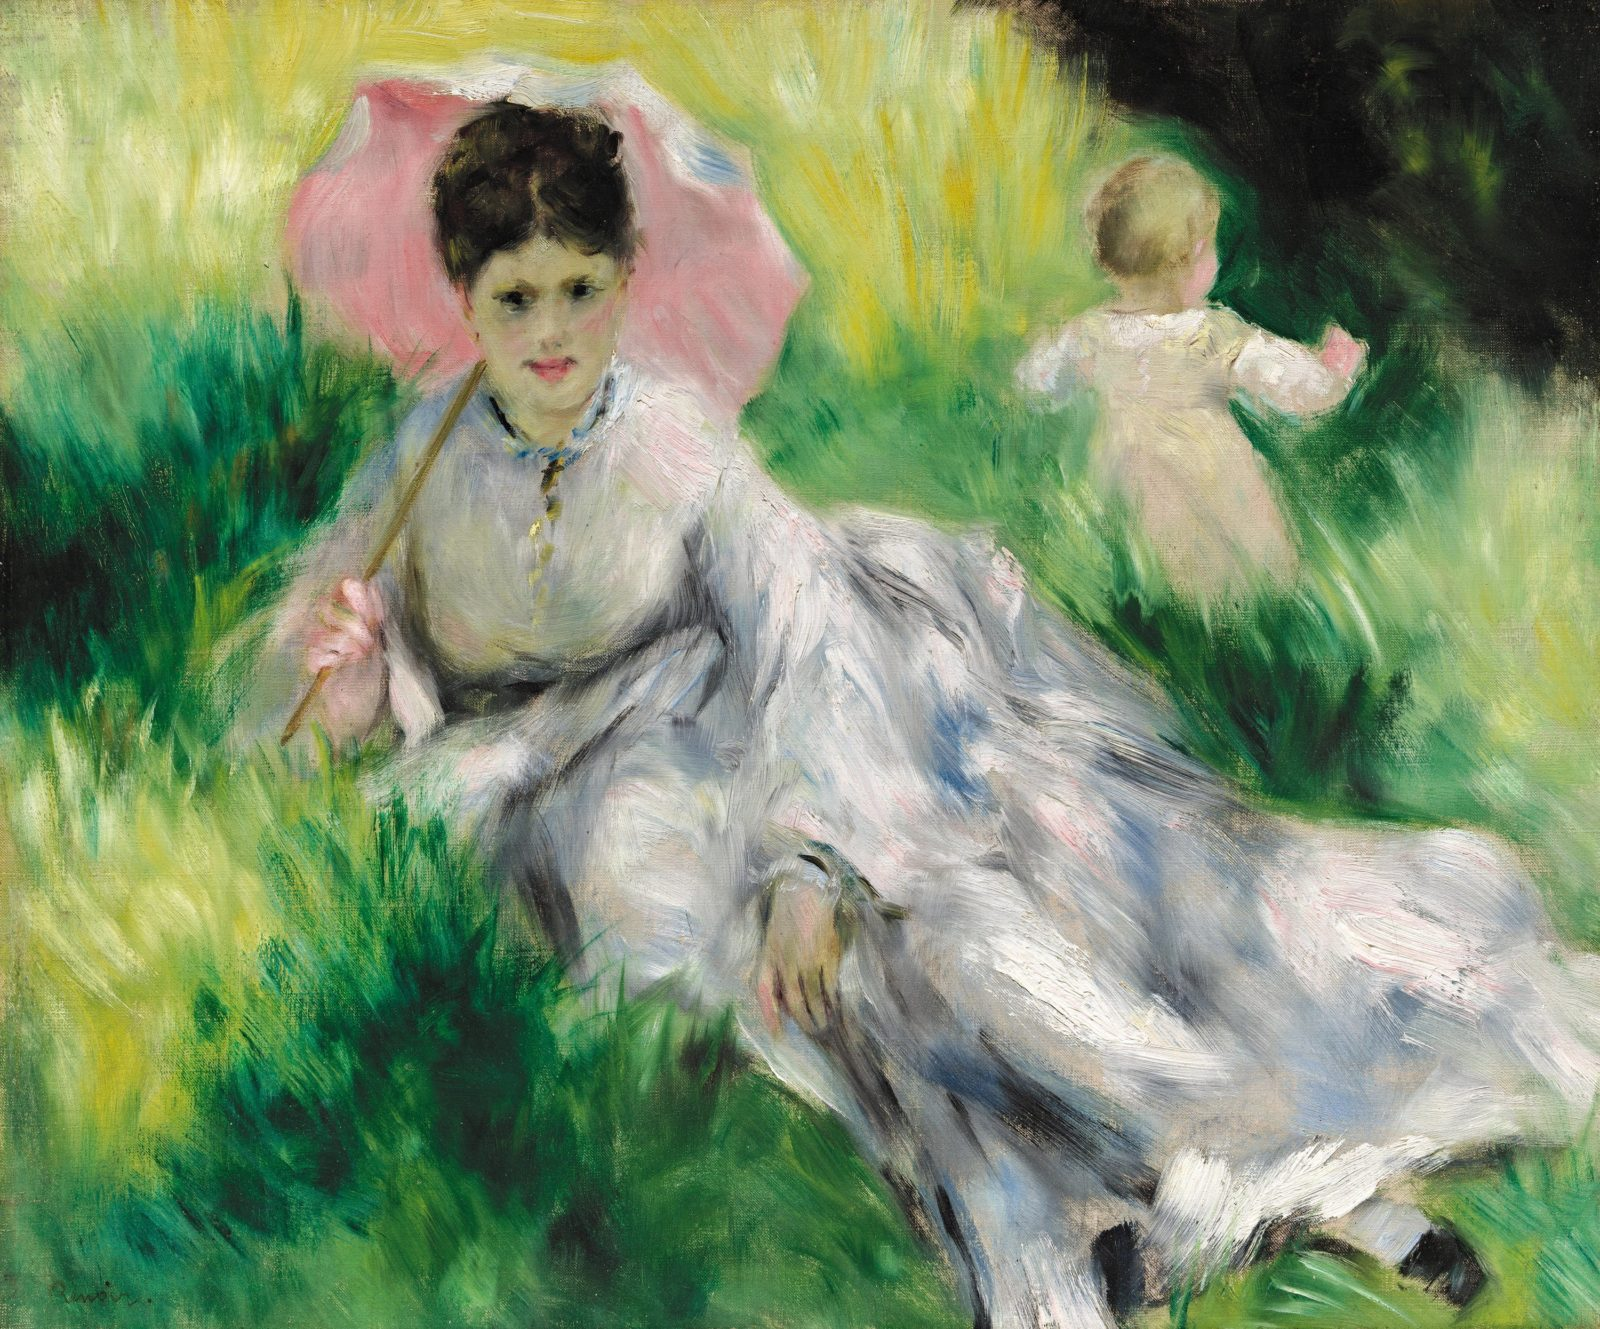 Pierre-Auguste Renoir French 1841–1919 Woman with a parasol and small child on a sunlit hillside